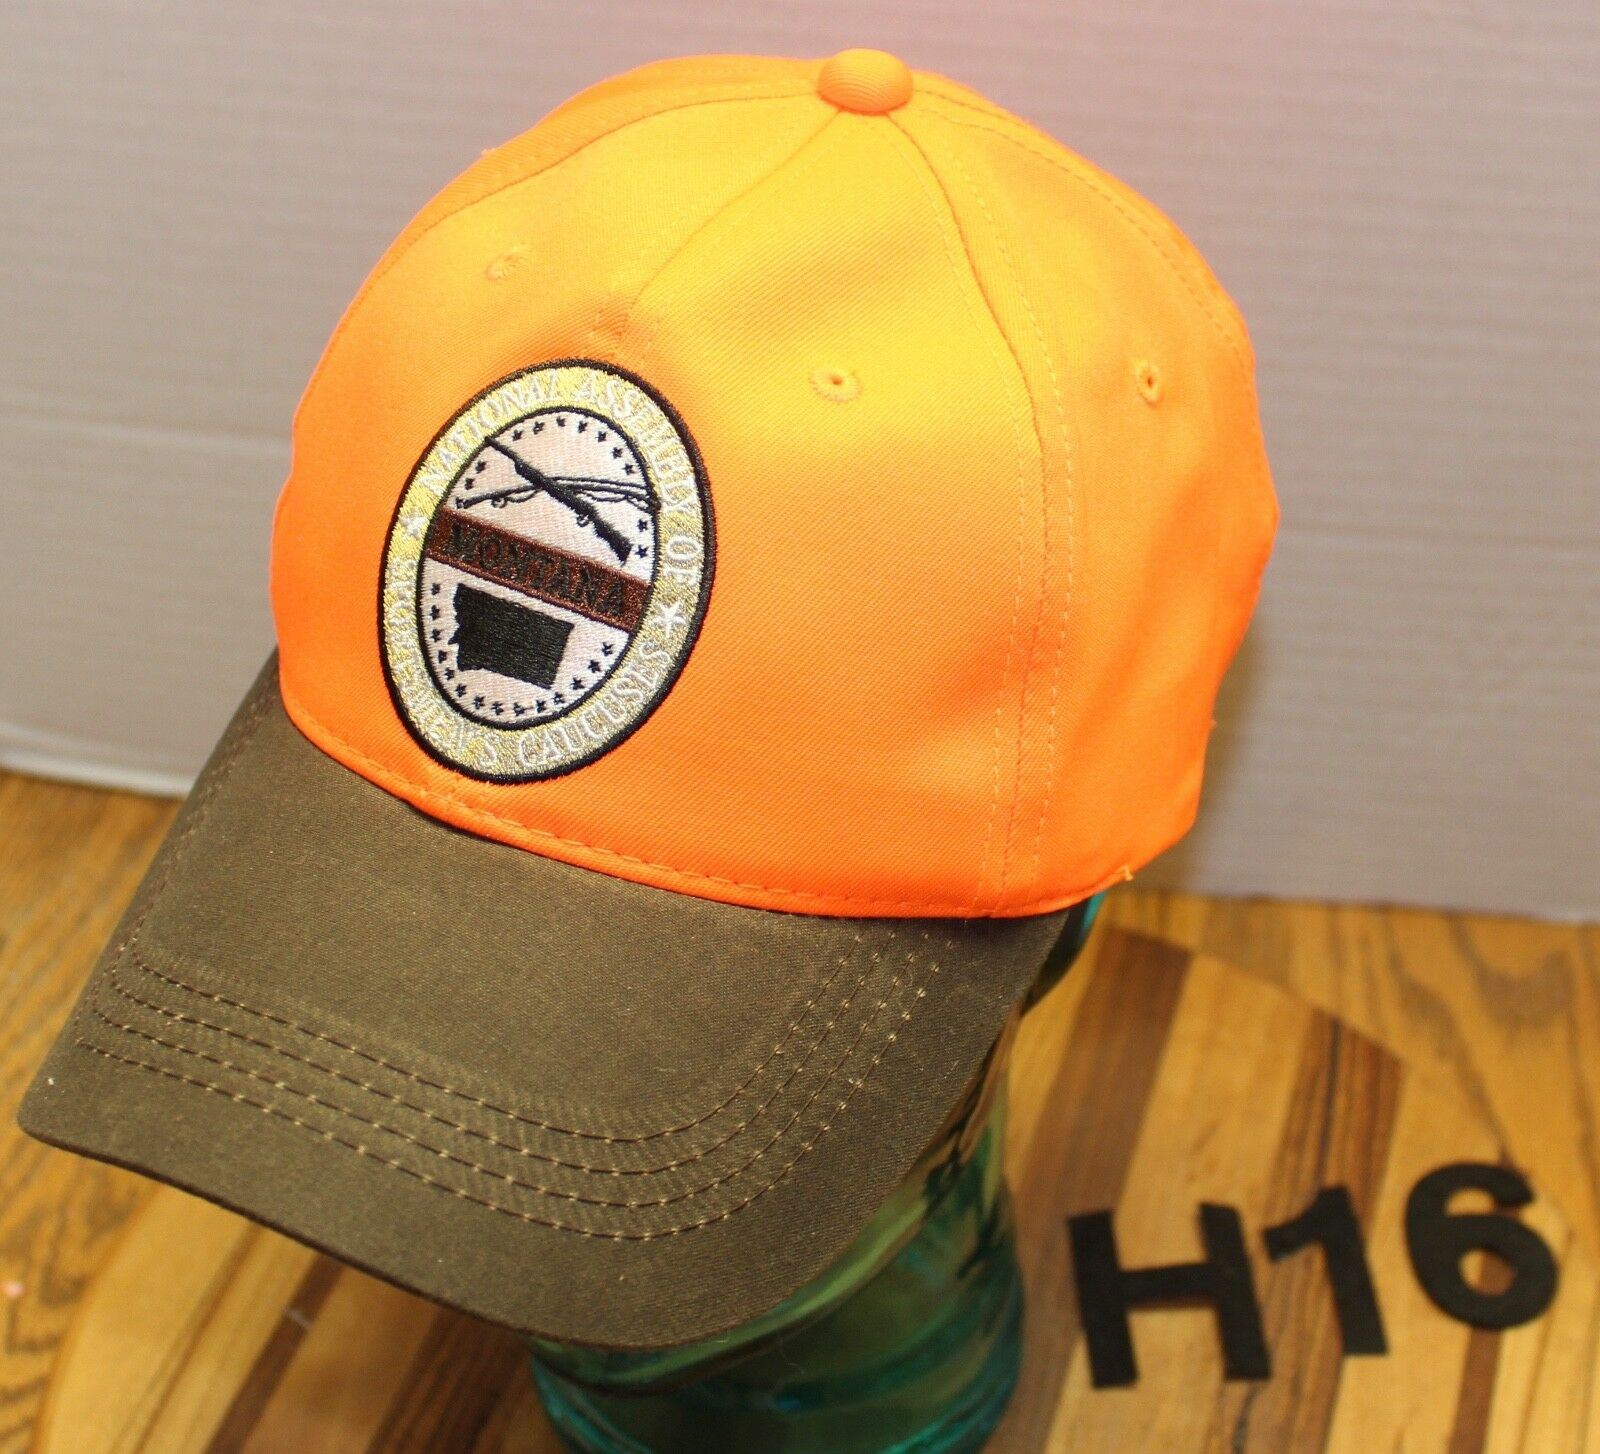 NWOT ASSEMBLY MONTANA NATIONAL ASSEMBLY NWOT OF SPORTSMEN'S CAUCUSES HAT ORANGE/BROWN H16 37b79c